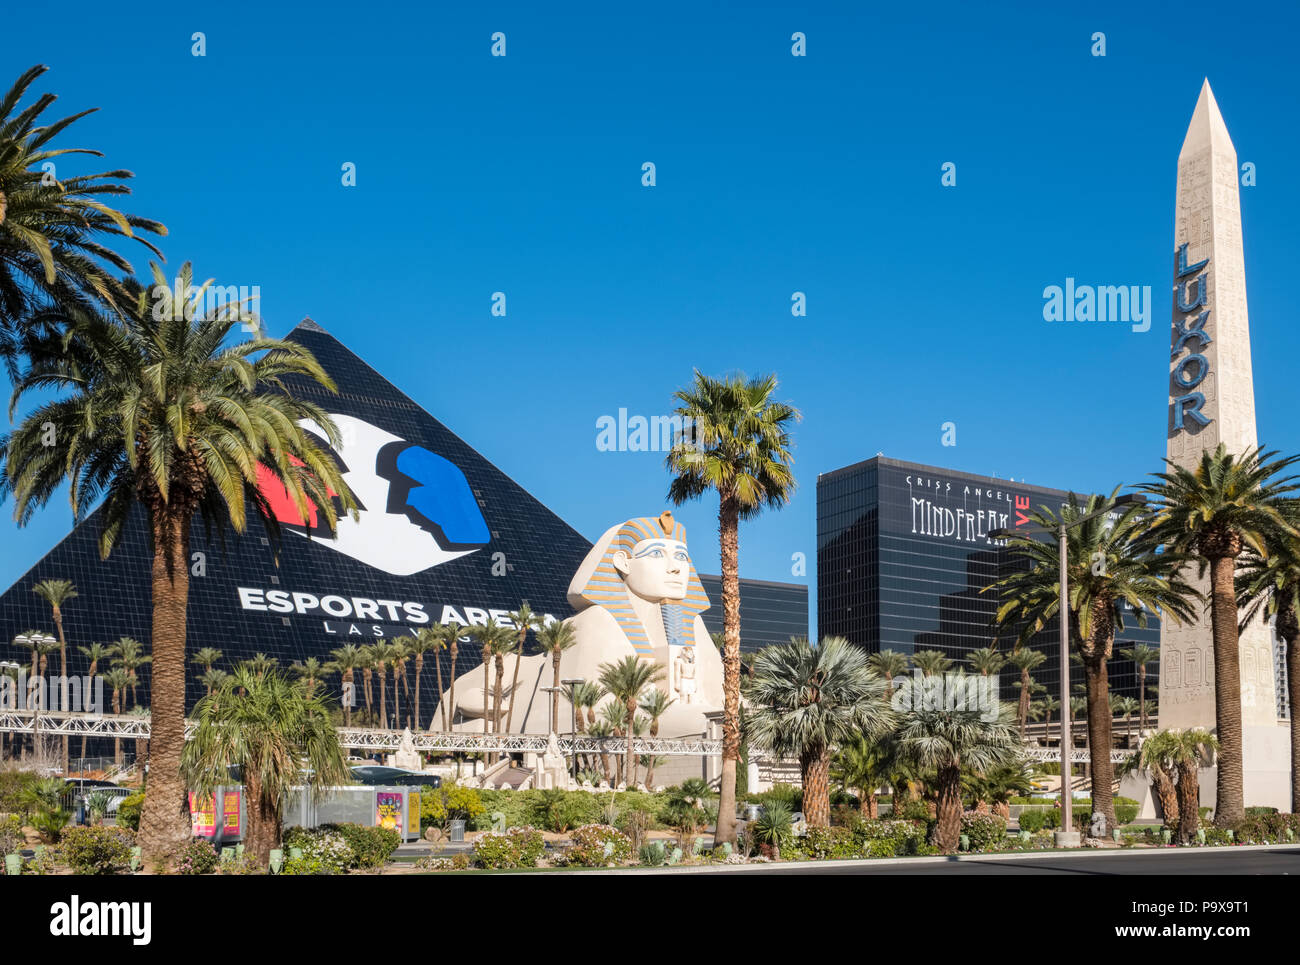 Esports Arena and the Luxor Hotel and Casino, on the Las Vegas Strip, Las Vegas, Nevada, USA - Stock Image